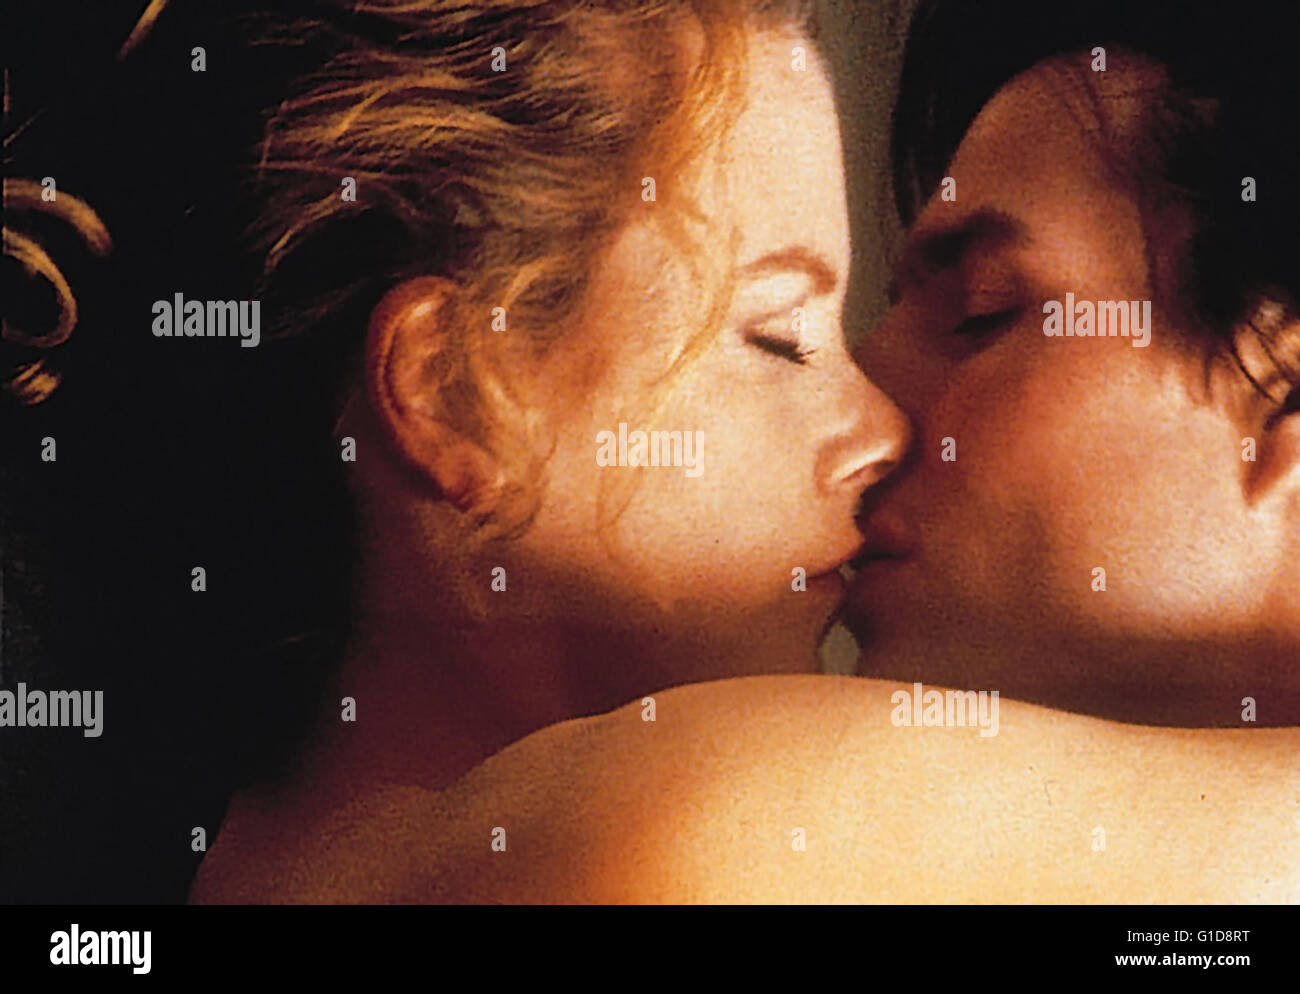 Eyes Wide Shut / Nicole Kidman / Tom Cruise, - Stock Image